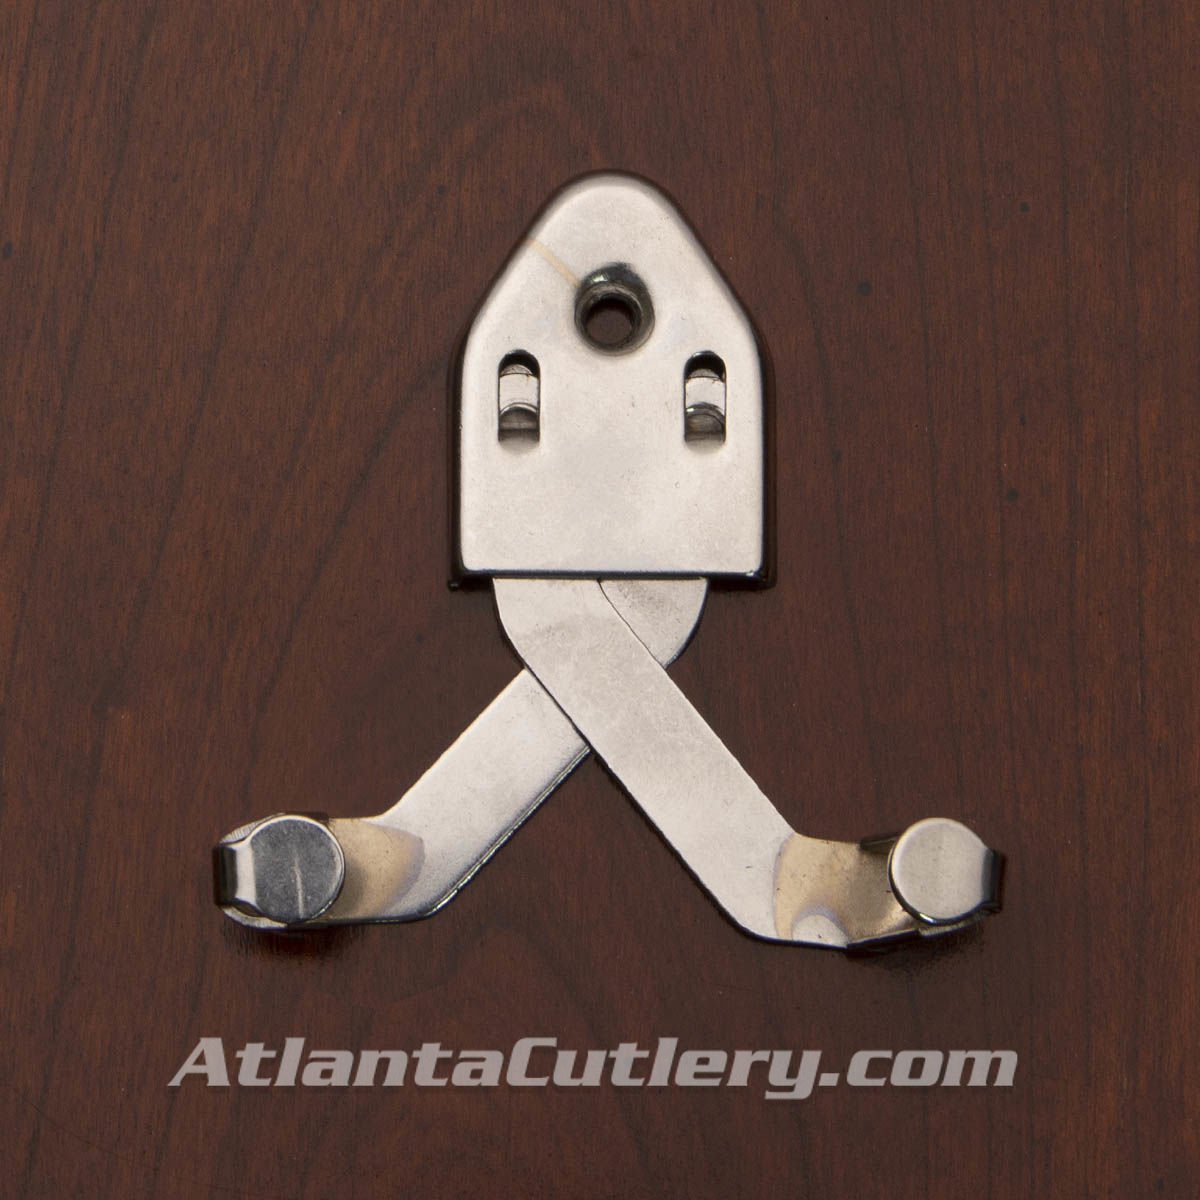 Polished steel sword hanger with adjustable bracket. With the sword hung the hanger practically disappears.